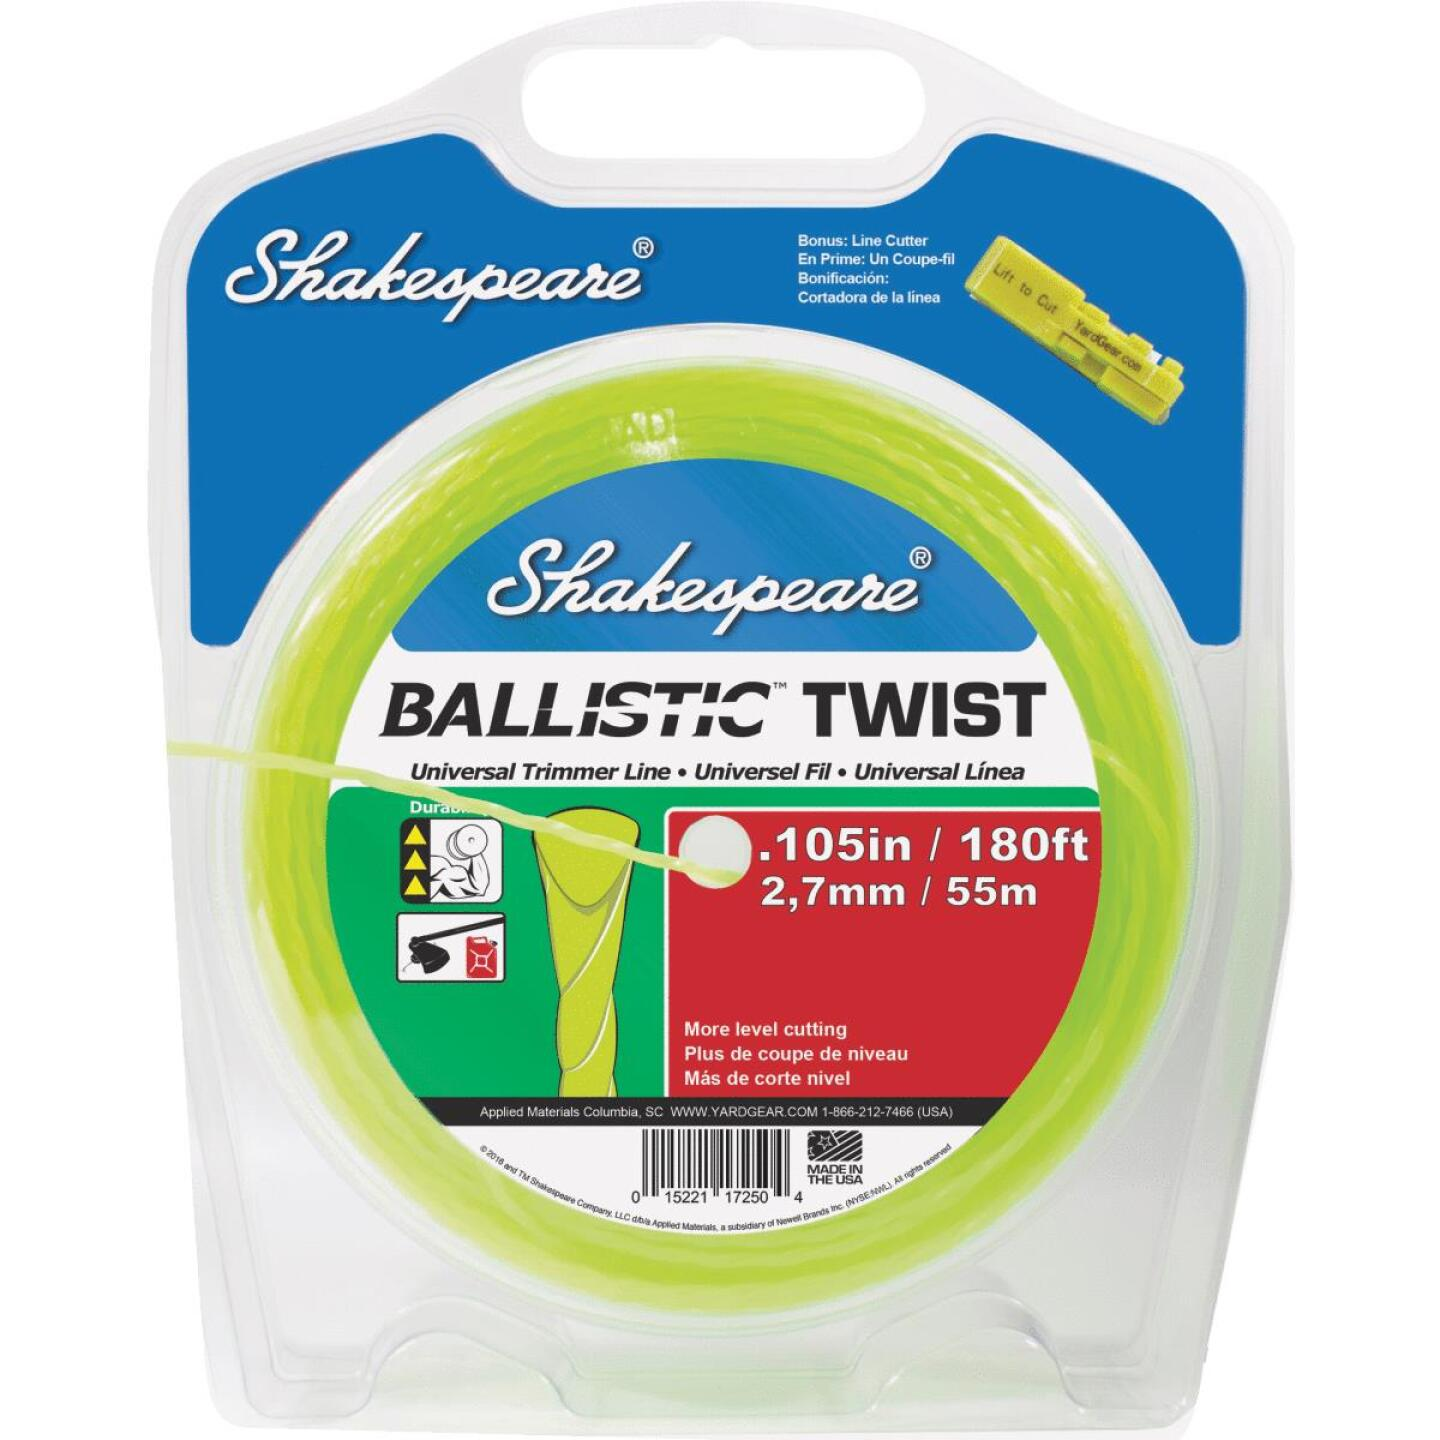 Shakespeare 0.105 In. x 180 Ft. Ballistic Twist Universal Trimmer Line Image 1